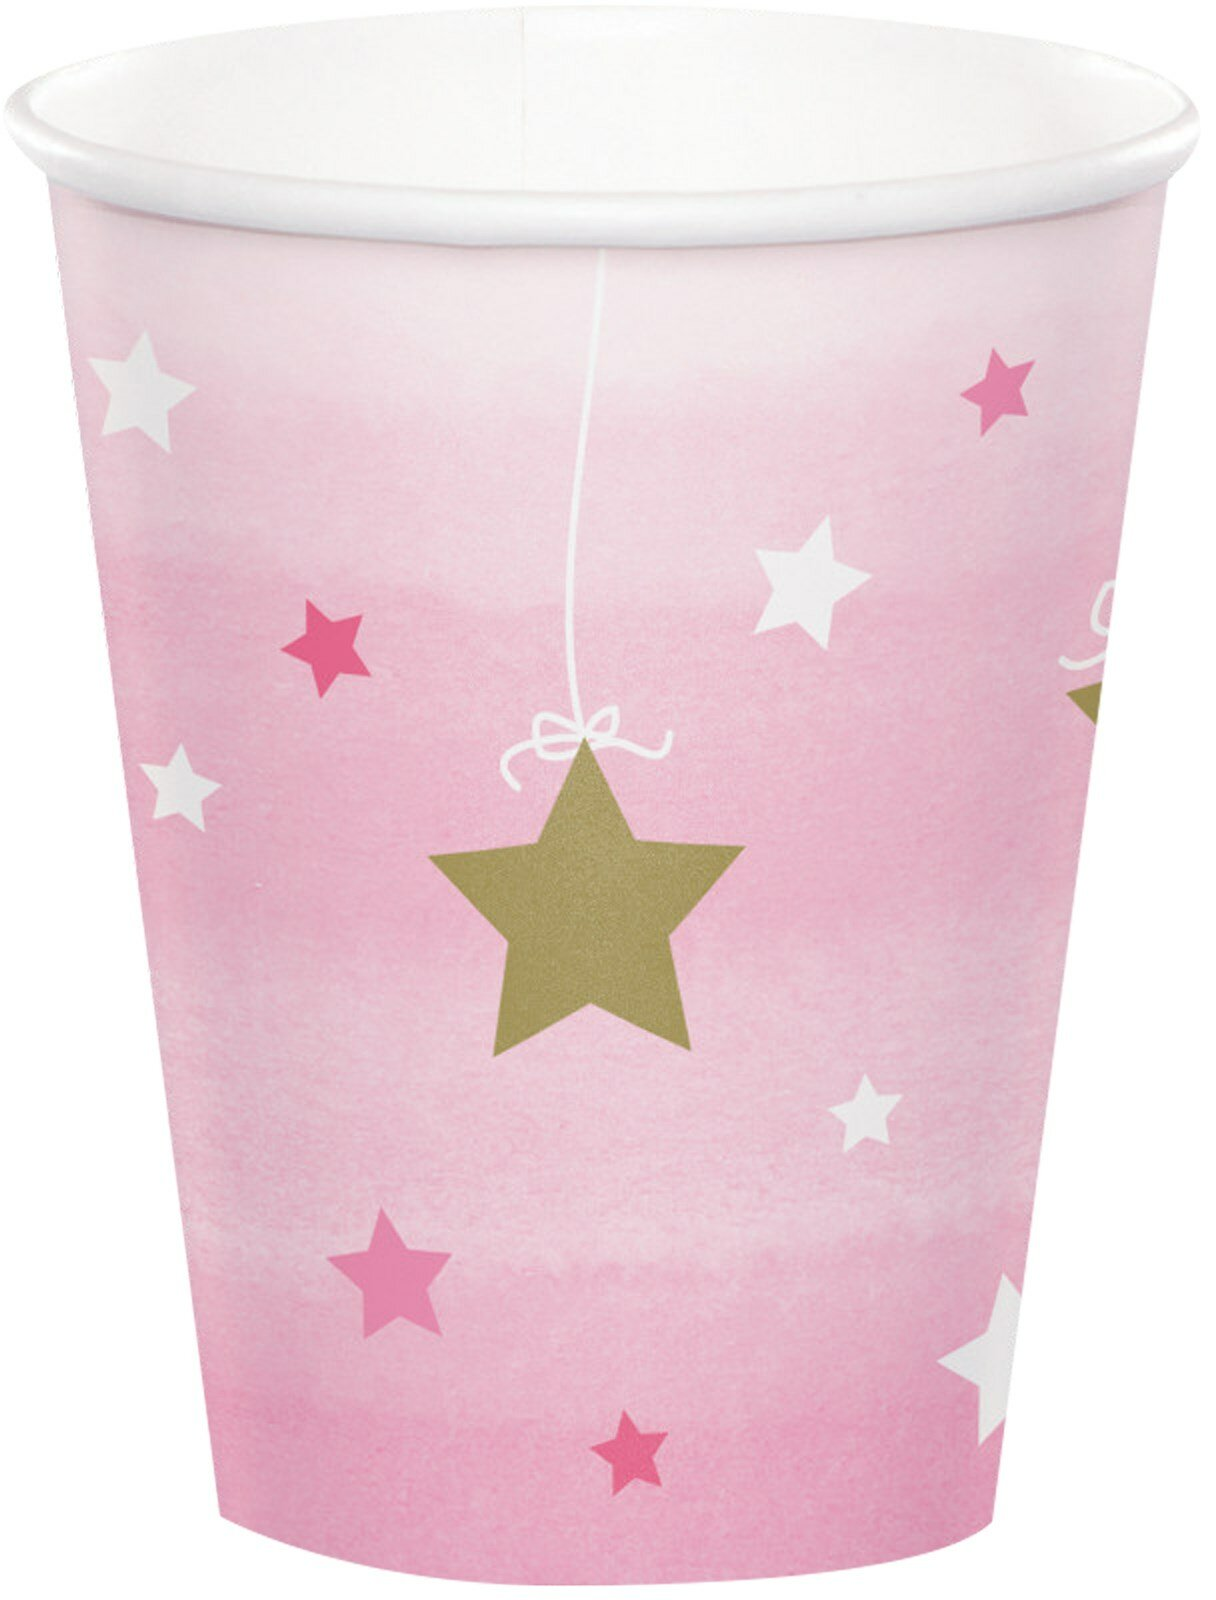 Twinkle Twinkle Little Star Pink Birthday Party Supplies Set Plates Napkins Cups Tableware Kit for 16